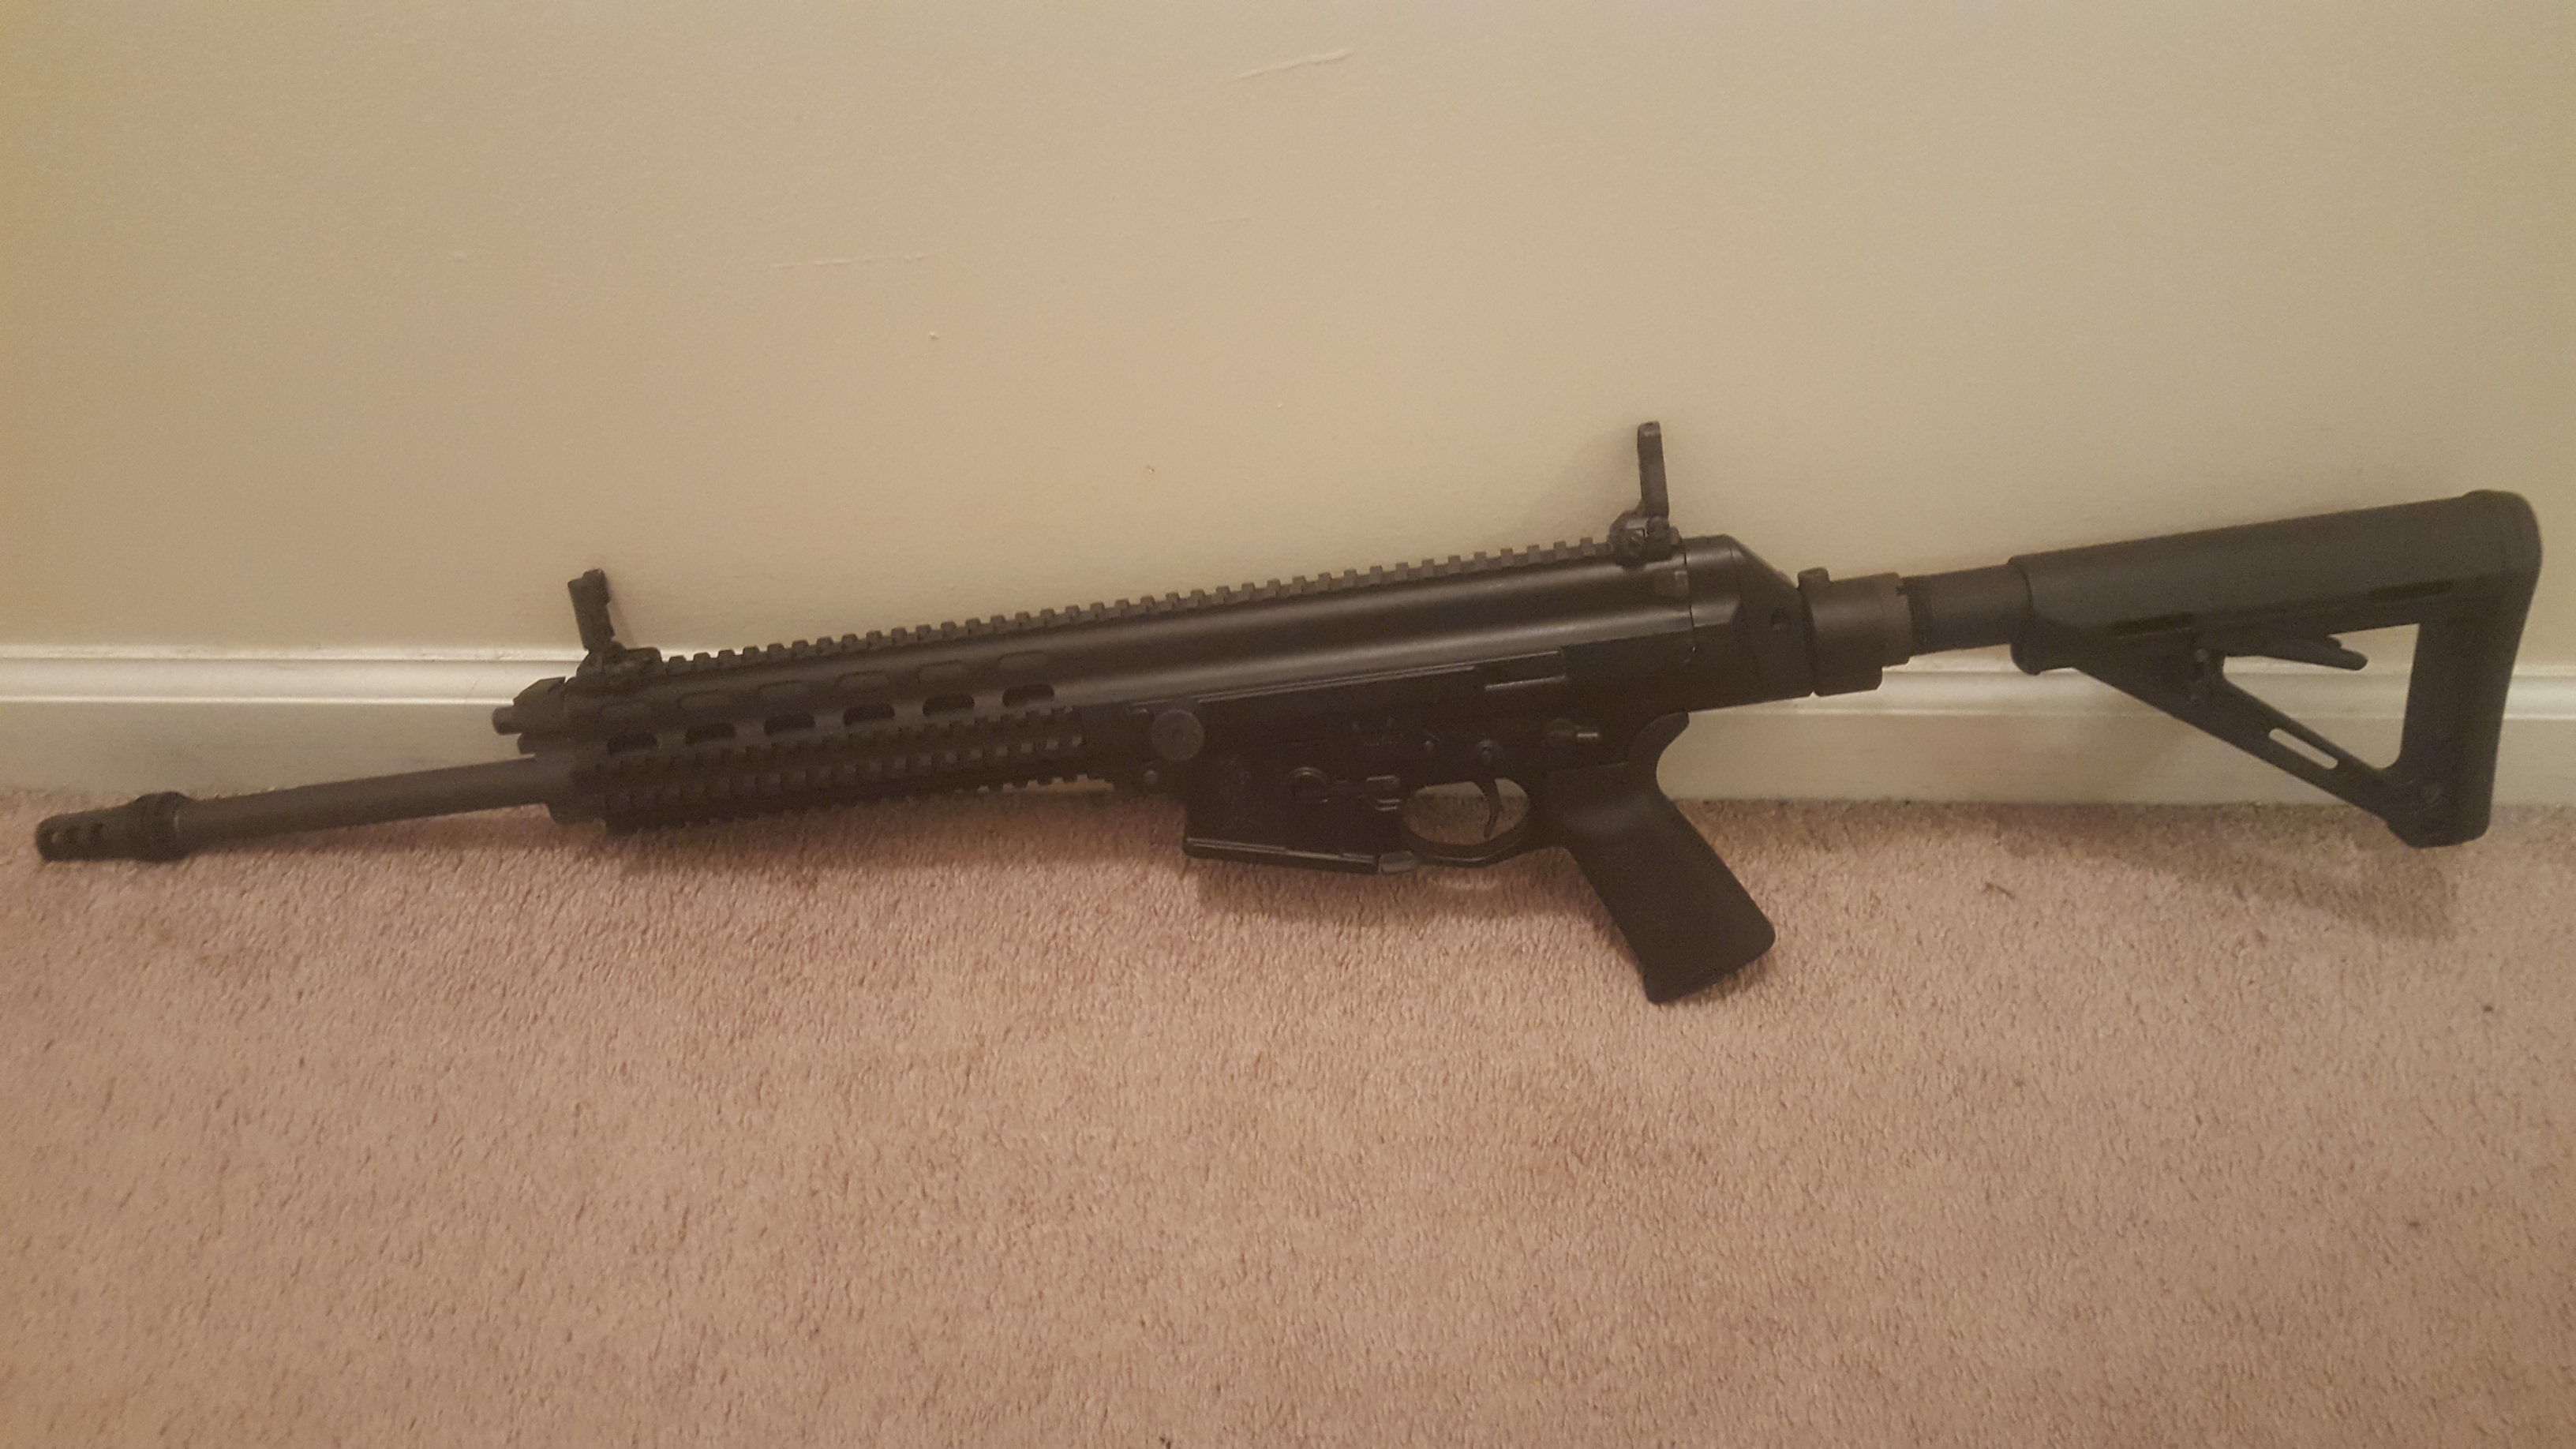 Used XCR in 5.56, a wish since i was a kid!-20181020_225708.jpg